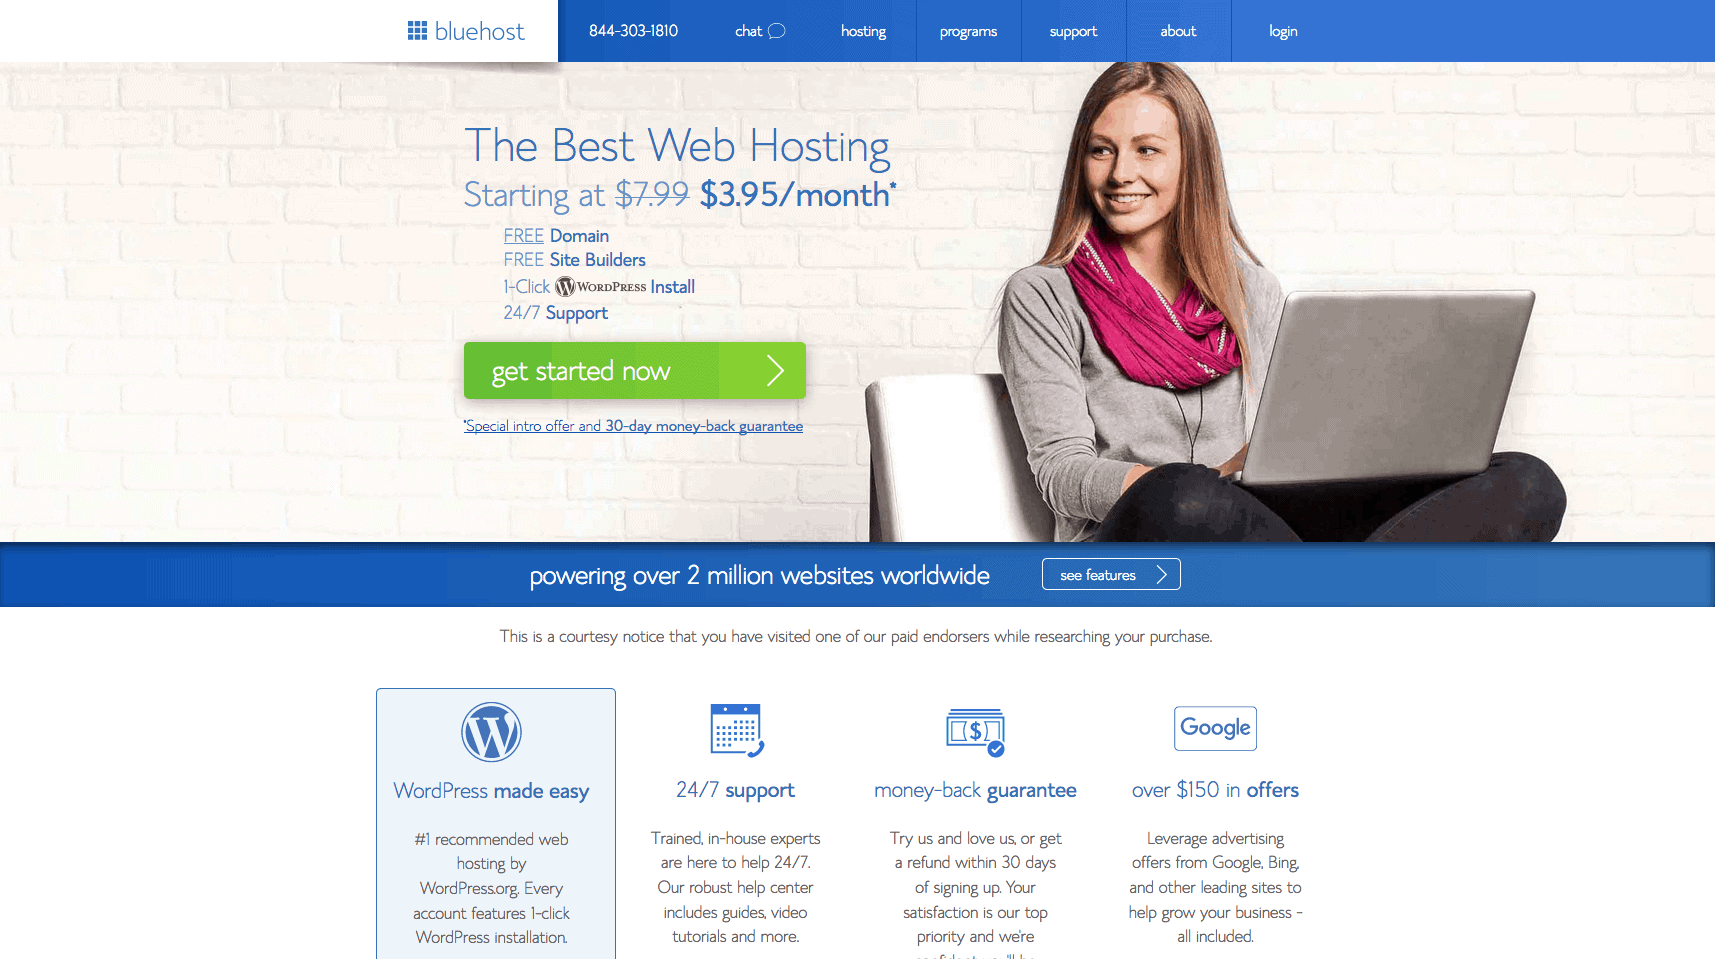 Try Bluehost today if you are starting a blog